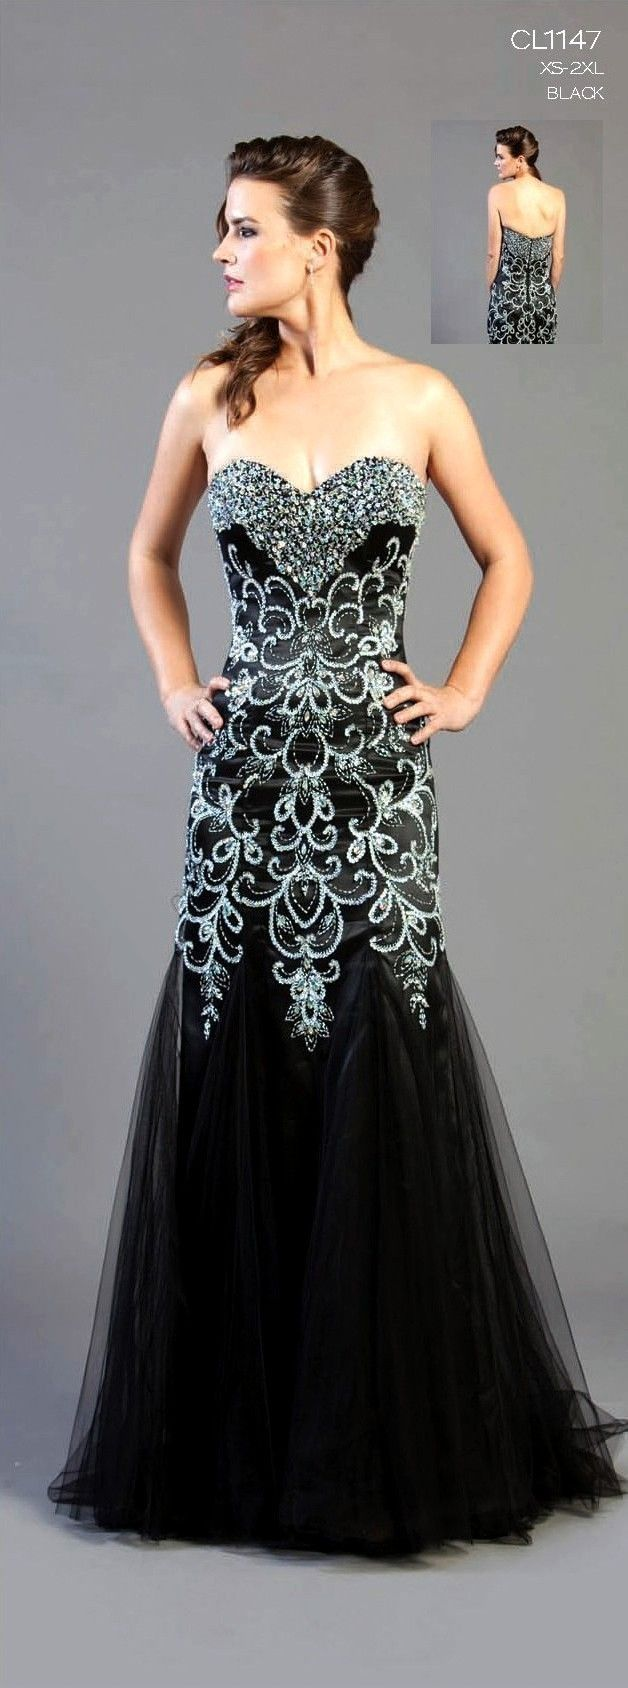 prom dresses long | ... STRAPLESS LONG BEADED UNIQUE PROM DRESS ...